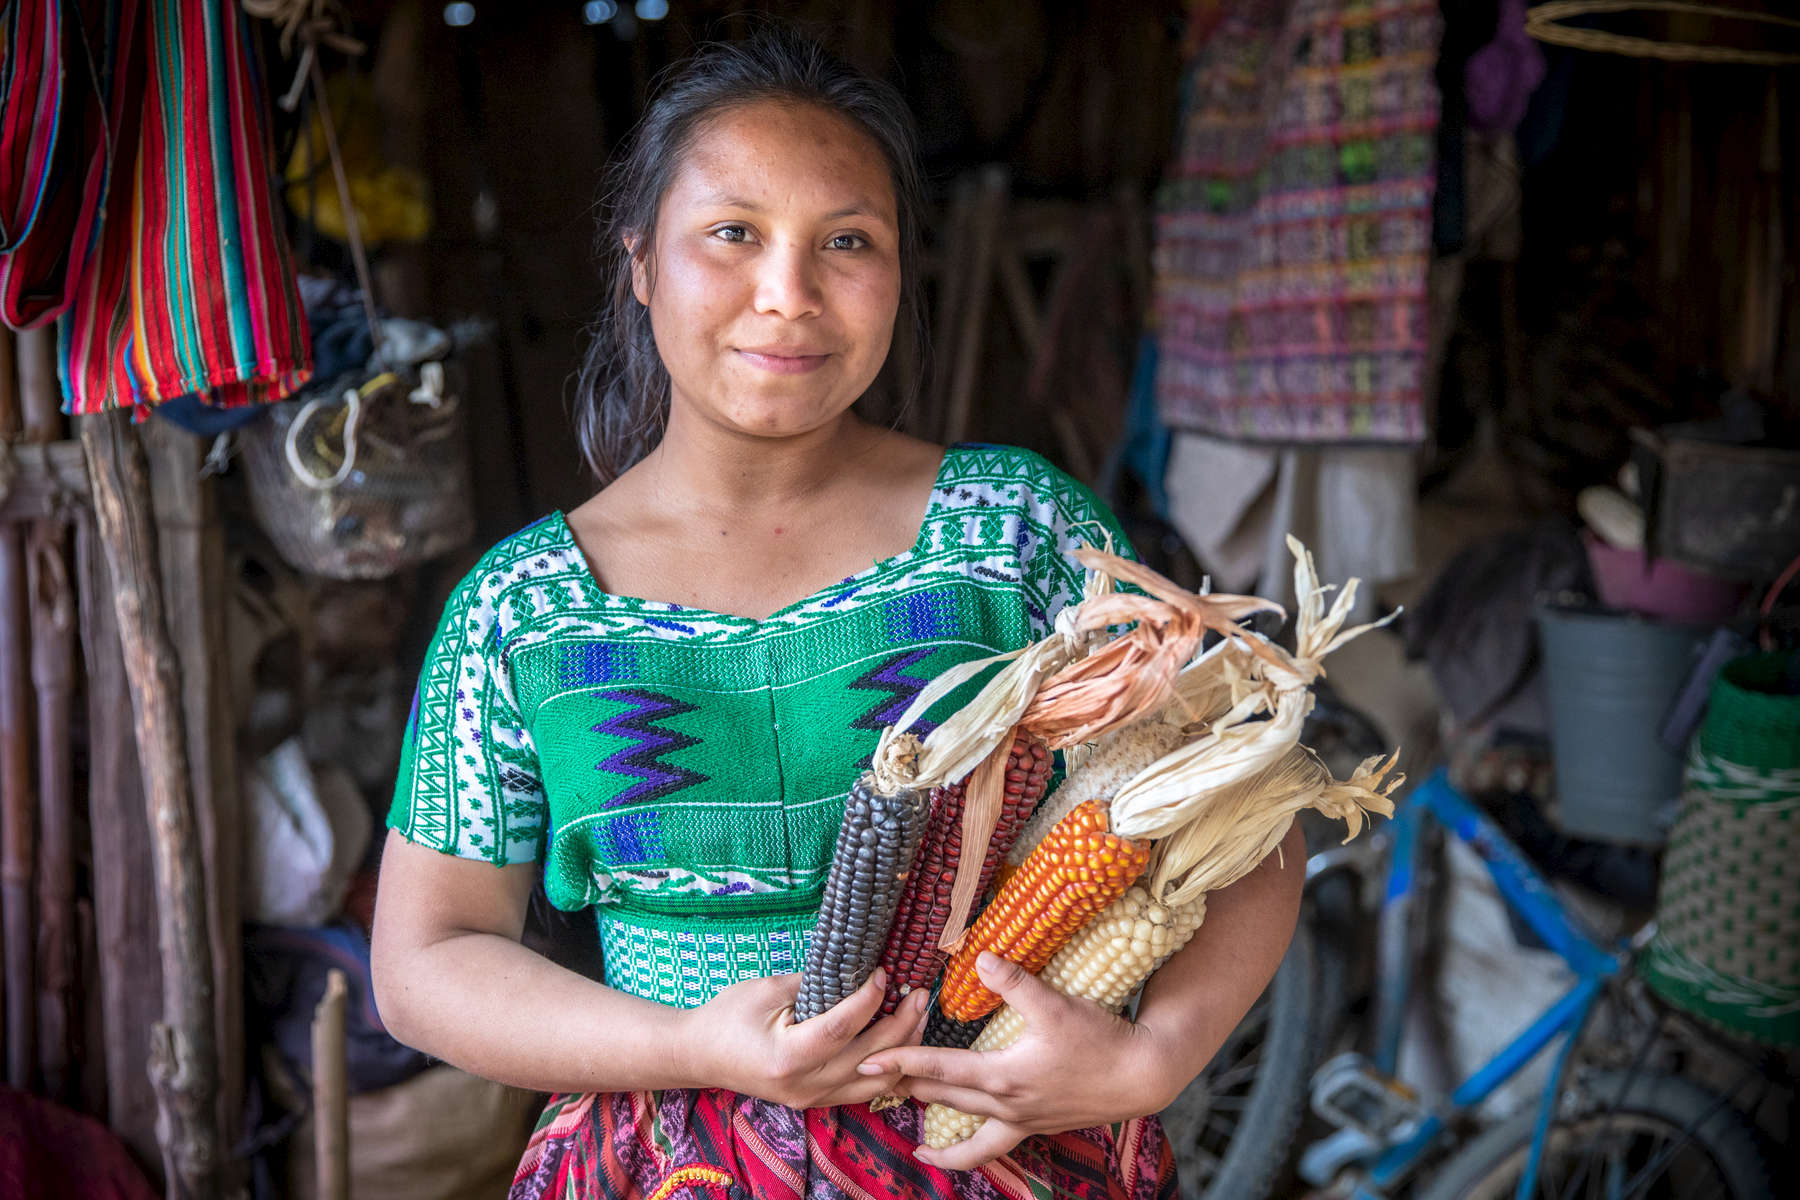 Olga Lucretia Matzar, 18, holds dried corn in front of her family's home. We first met Olga in 2017 when she was a participant of Mercy Corps' AgriJoven program, which works to prevent youth migration out of Guatemala's Western Highlands. At that time, she had dropped out of school so she could work and help support her family, and had thought about migrating to the city for better opportunities.A year and a half later, Olga is more optimistic than ever that she can stay in her community and build a life. Through the program she learned farming techniques to help her parents improve their crops and triple the land they farm, and saved enough through her savings and loan group to return to school. She is now studying to be a teacher, and she wants to be a role model for other young people so they see opportunity in their community and choose not to migrate.  Much of Guatemala's migration occurs out the Western Highlands, an agricultural region characterized by underdevelopment, poverty and a lack of opportunity. AgriJoven provides youth with agricultural training and savings and loan groups, which offer them a chance to see a future in agriculture or invest in other ventures without having to leave home.